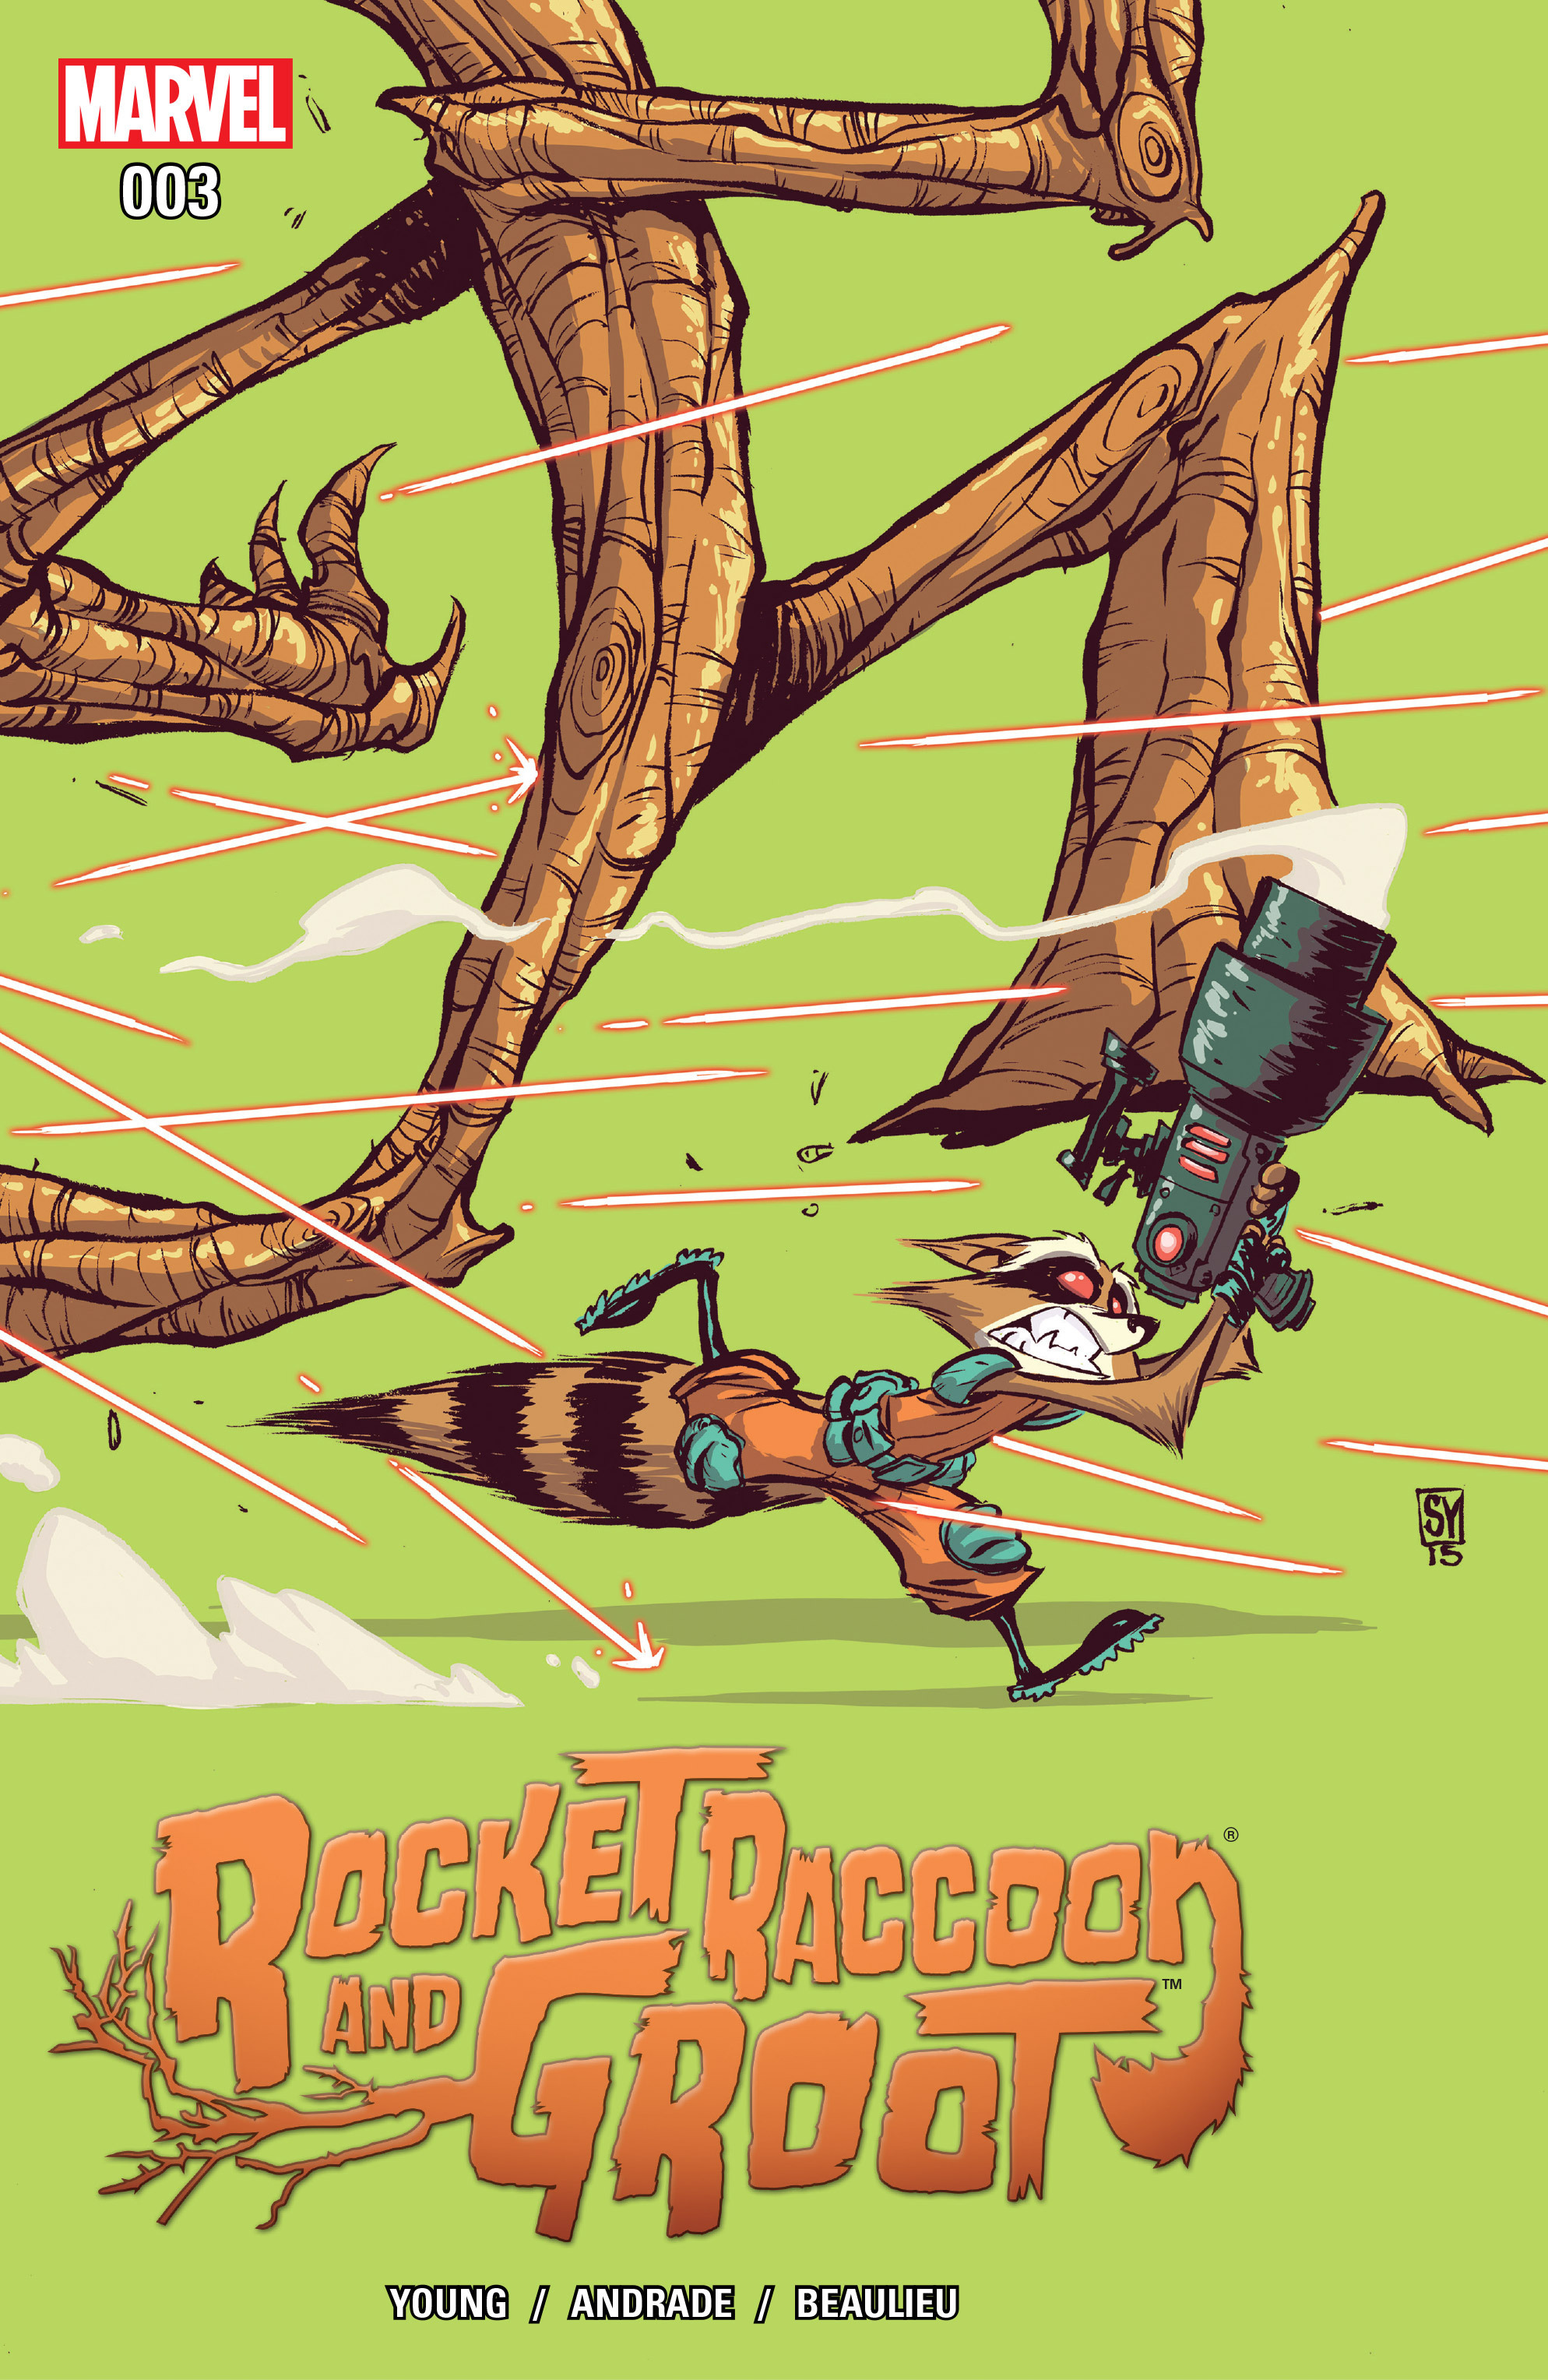 Rocket Raccoon & Groot #3 - Read Rocket Raccoon & Groot